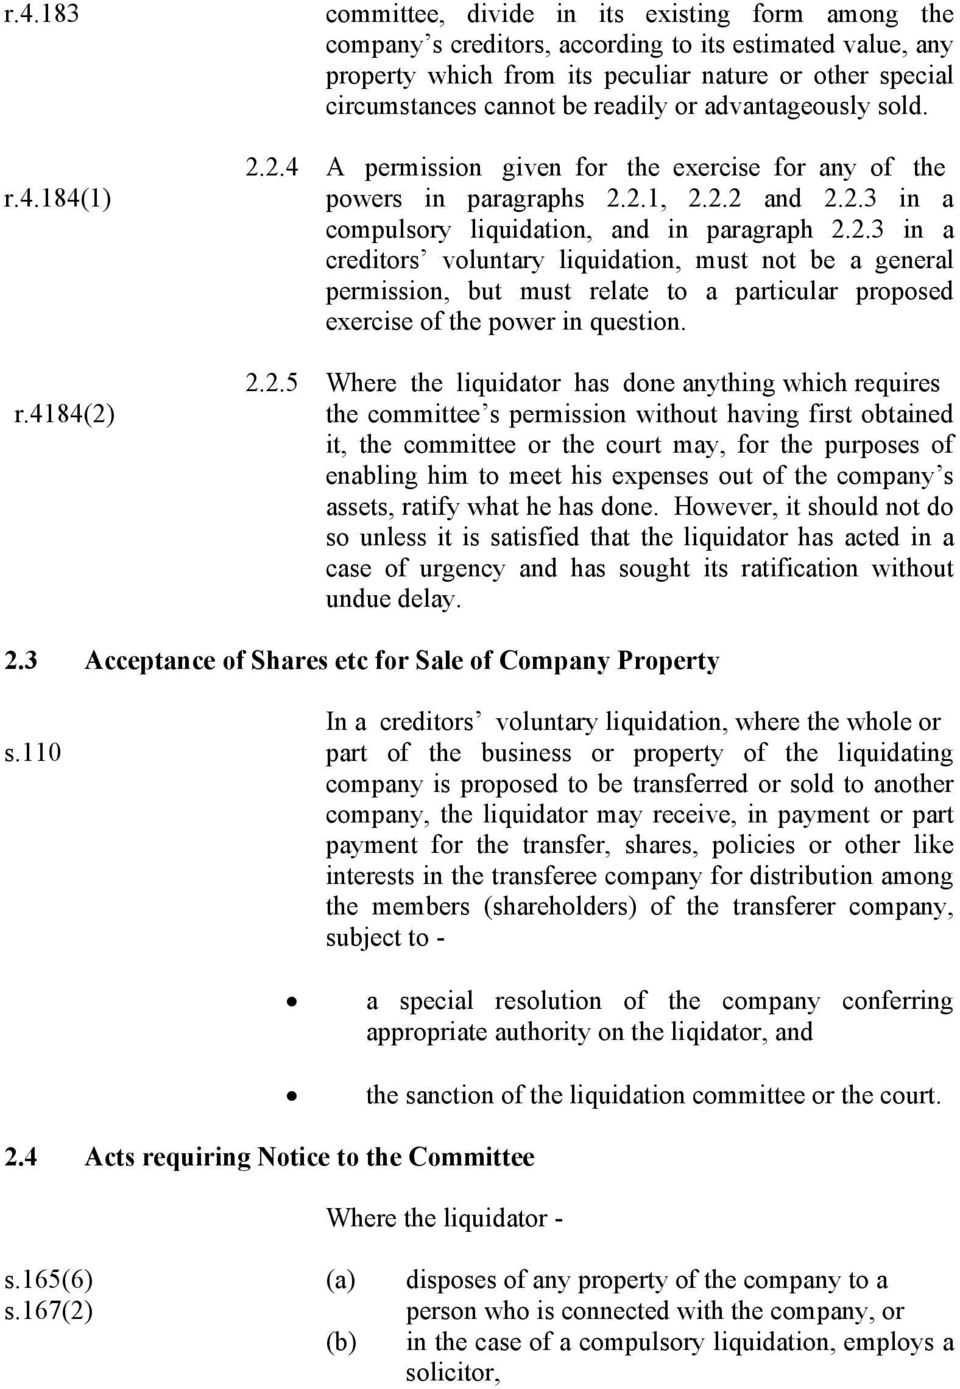 readily or advantageously sold. 2.2.4 A permission given for the exercise for any of the powers in paragraphs 2.2.1, 2.2.2 and 2.2.3 in a compulsory liquidation, and in paragraph 2.2.3 in a creditors voluntary liquidation, must not be a general permission, but must relate to a particular proposed exercise of the power in question.